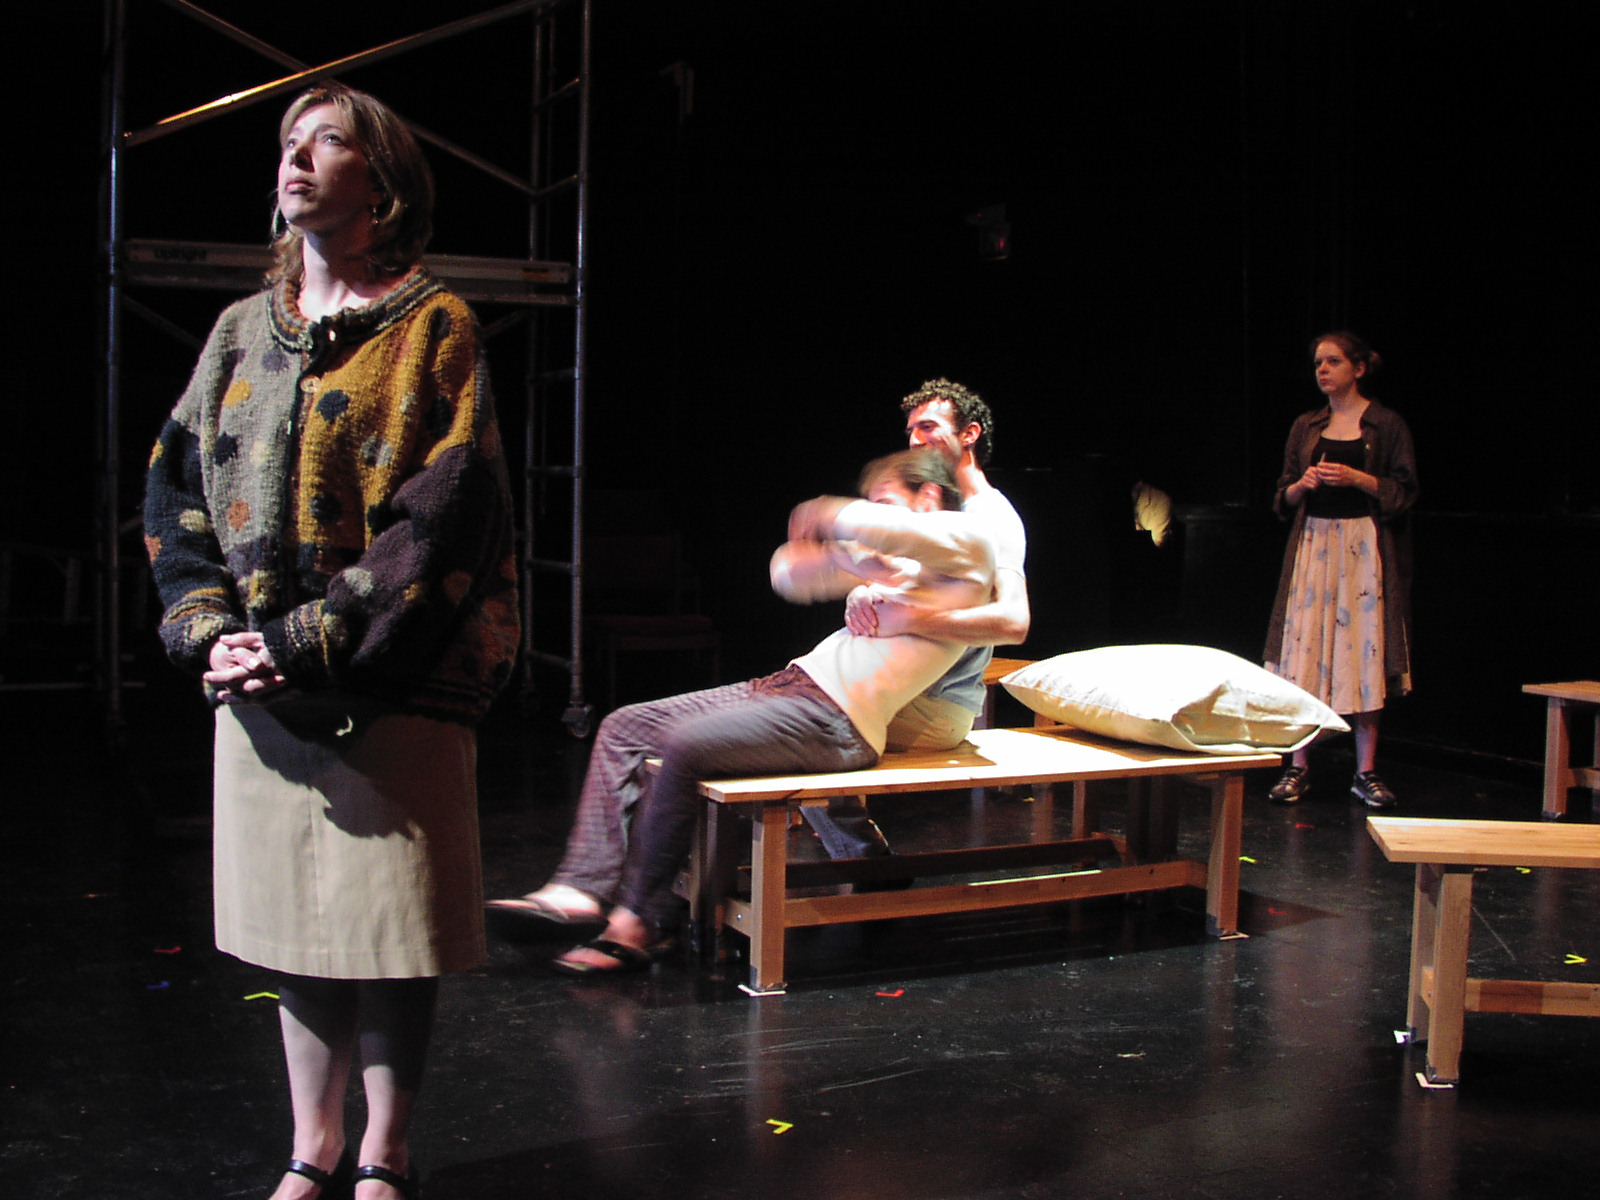 Christine Barbush, Seth Peterson, Robin Marcotte, and Jillian Louis in the 2004 Philadelphia production of Breathe